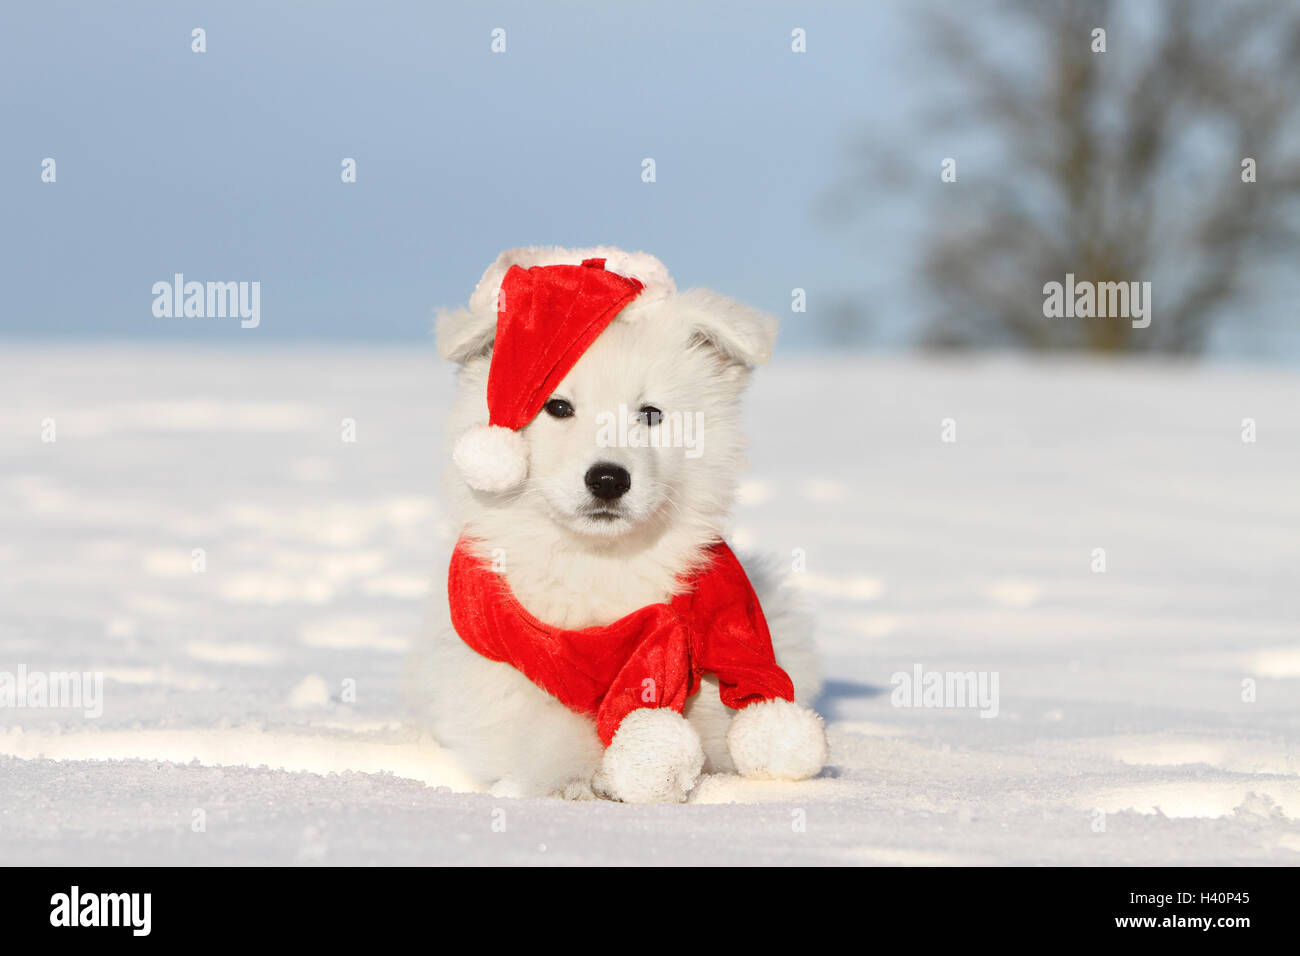 White Swiss Shepherd Dog Berger Blanc Suisse Puppy In Christmas